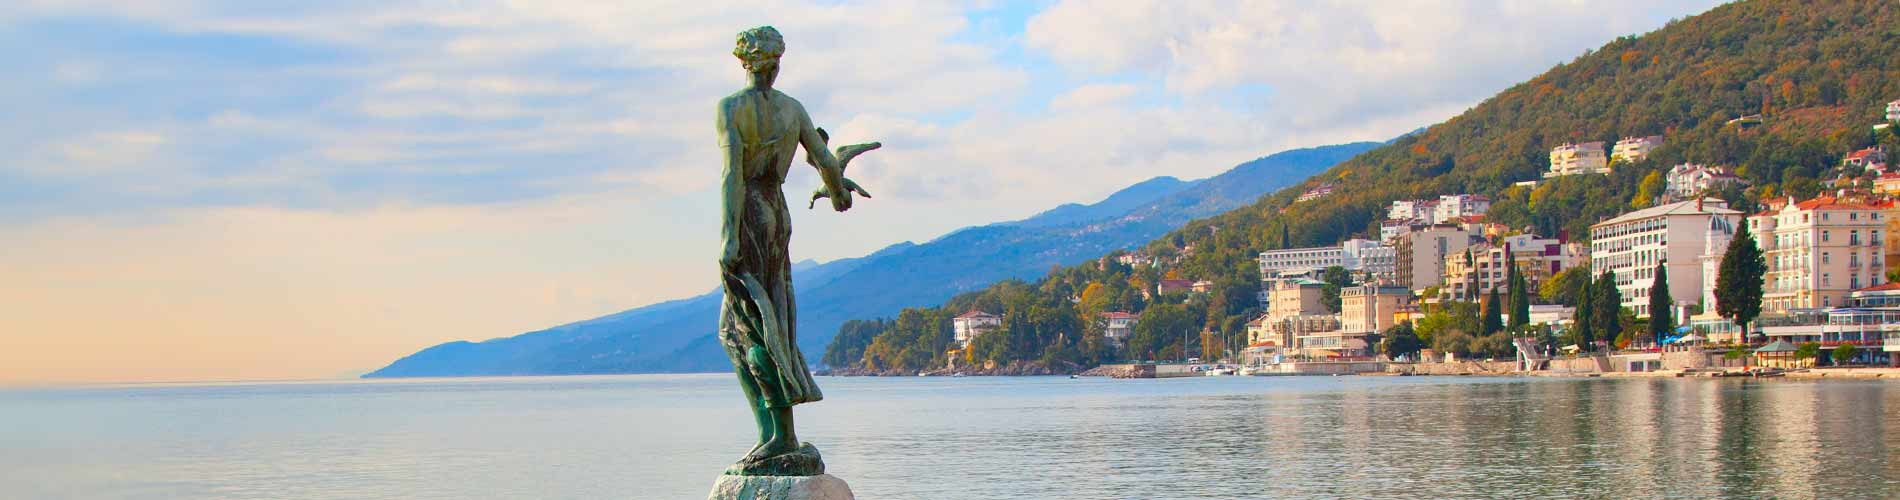 Maiden with seagull Opatija Croatia.jpg